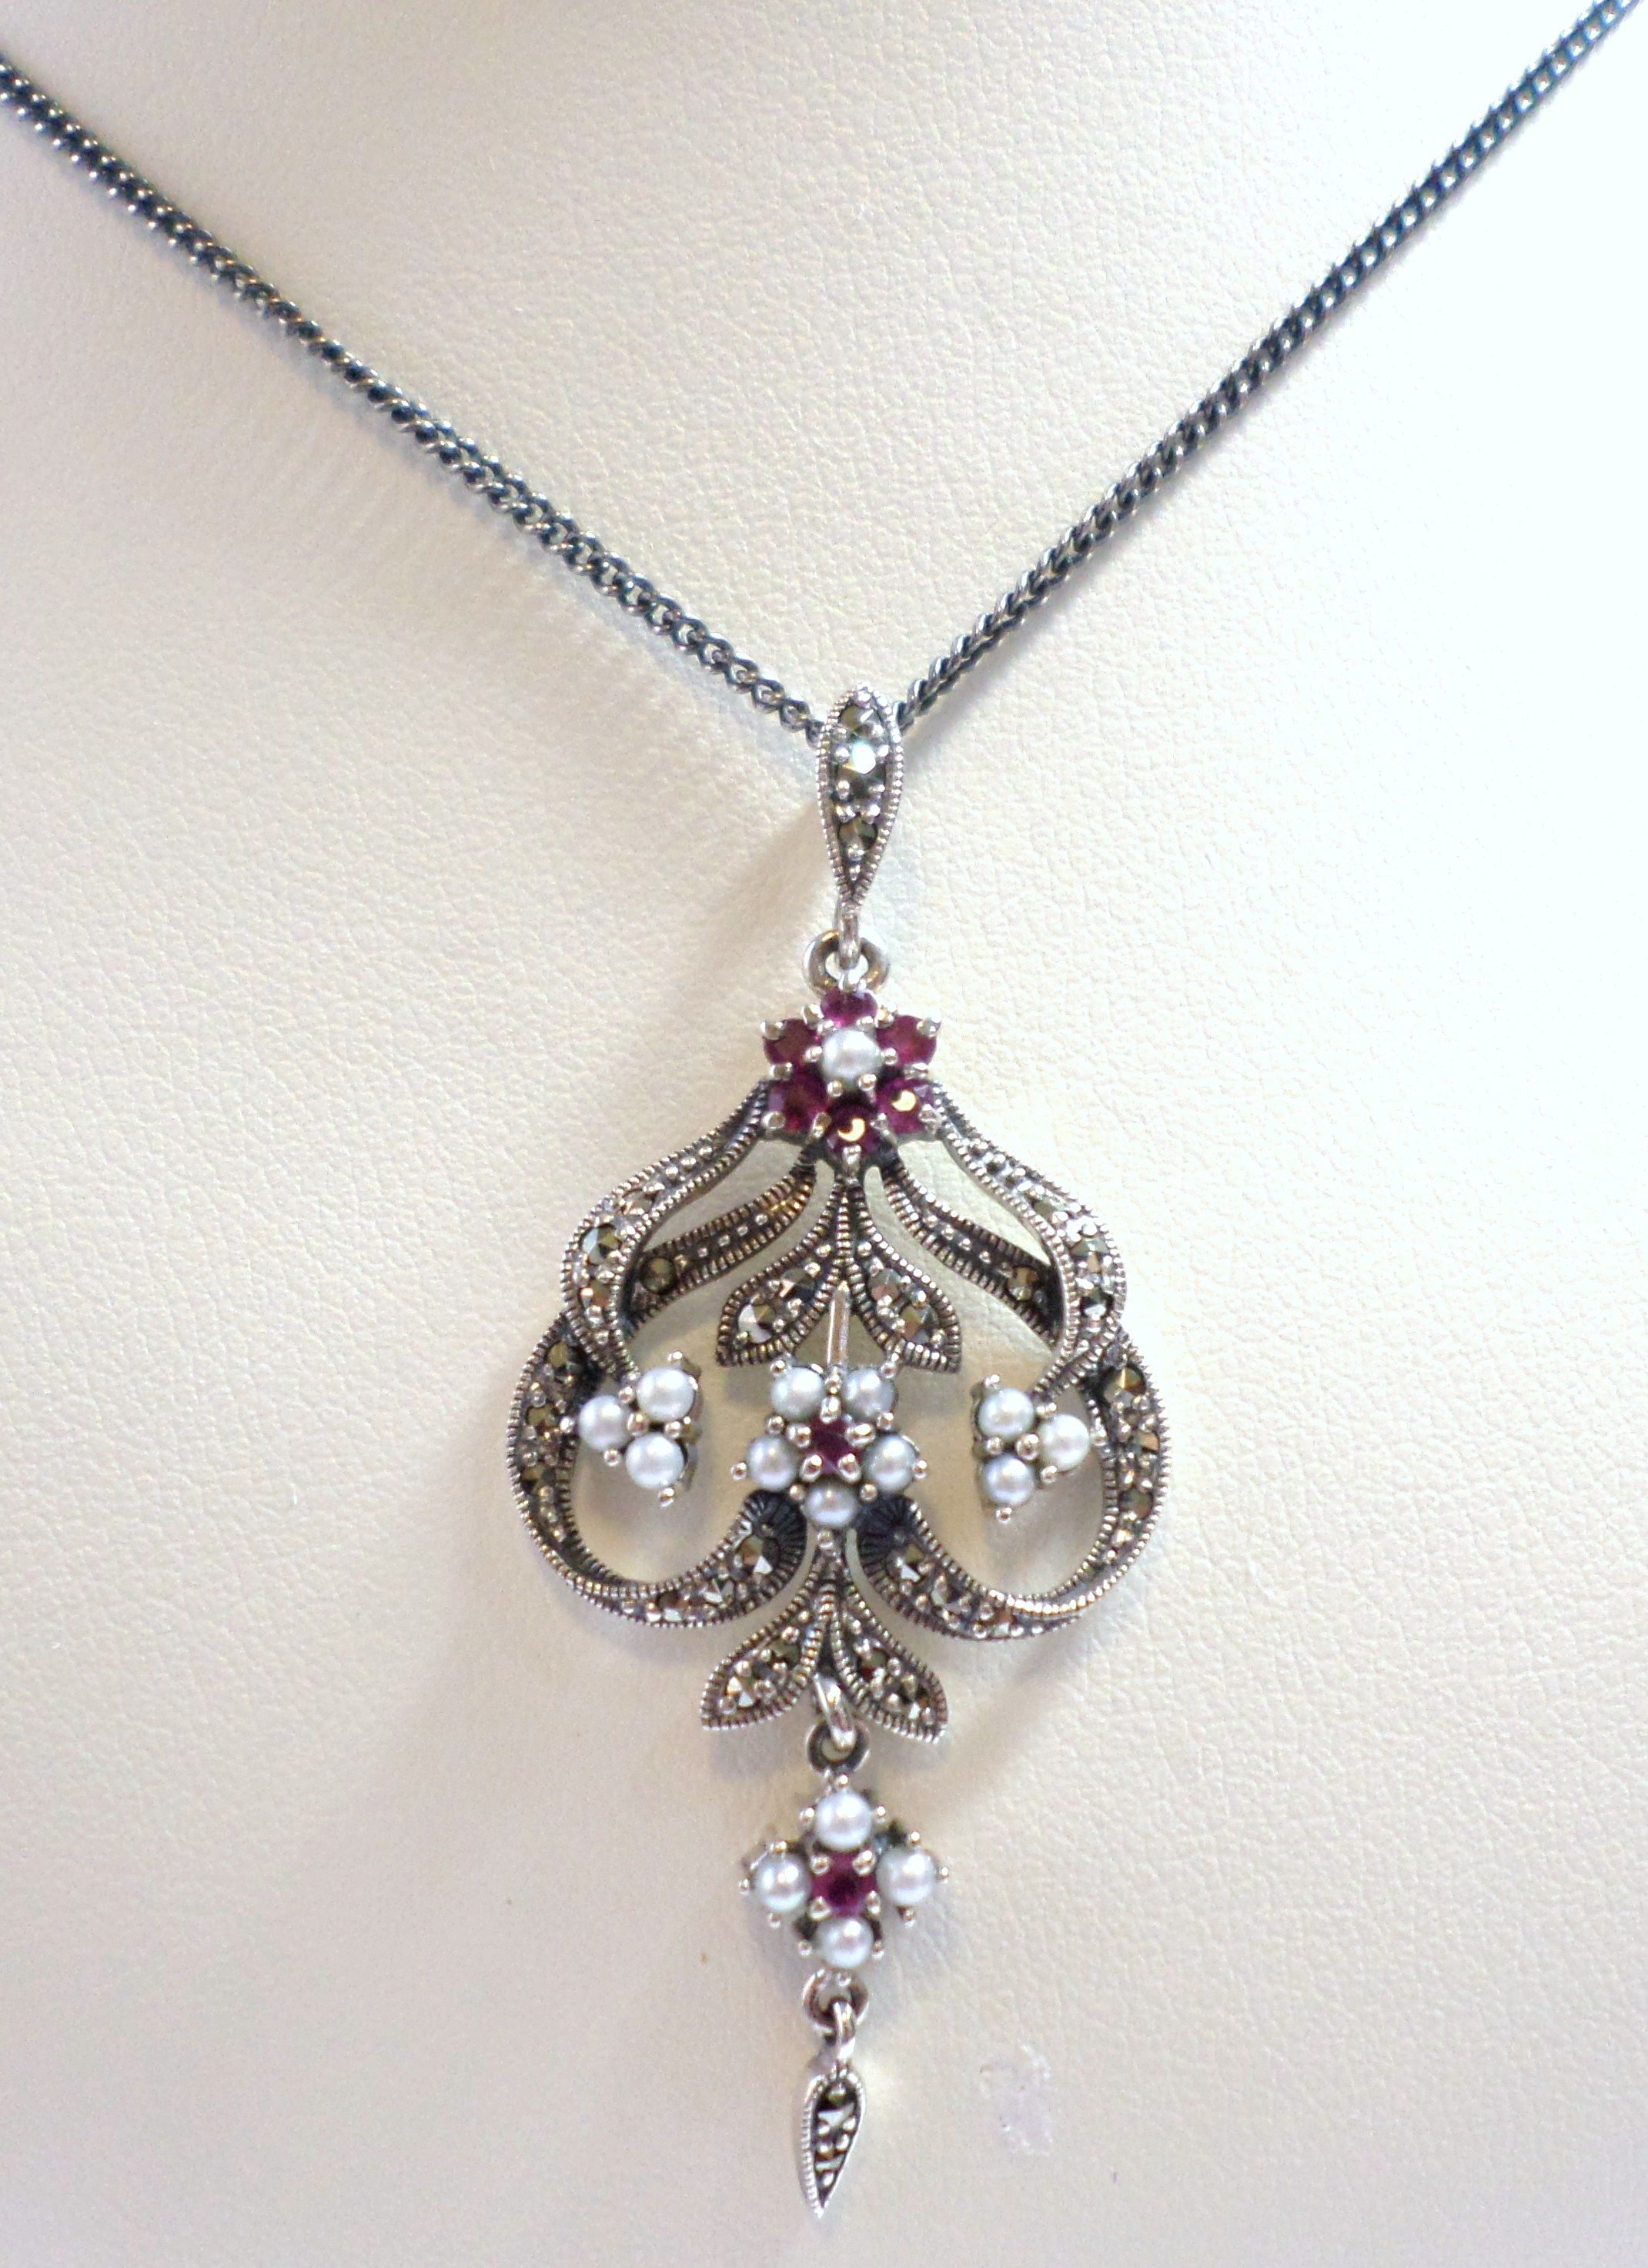 Sterling Silver Flower Daisy Pendant Set With Marcasite Cultured Freshwater Seed Pearls And Ruby Vinta Sterling Silver Flowers Marcasite Jewelry Daisy Pendant